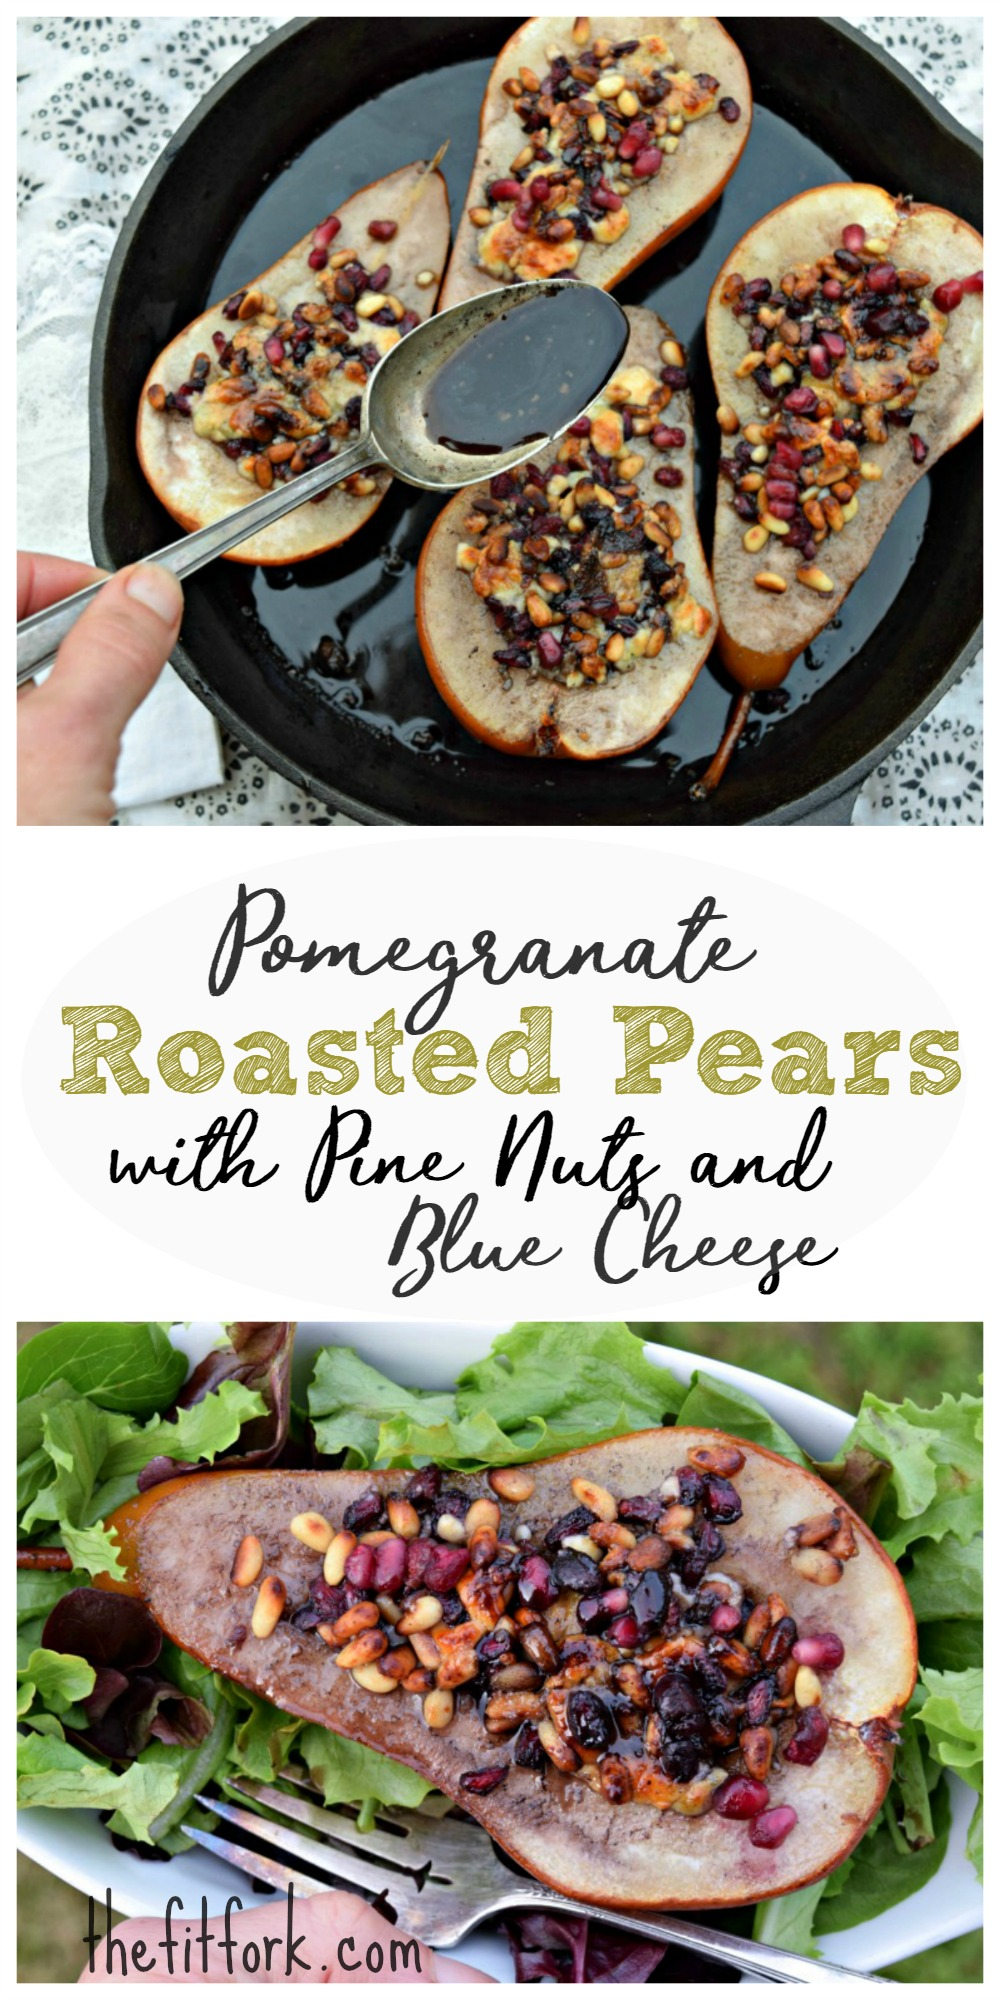 Pomegranate Roasted Pears with Pine Nuts & Blue Cheese makes a simple ...